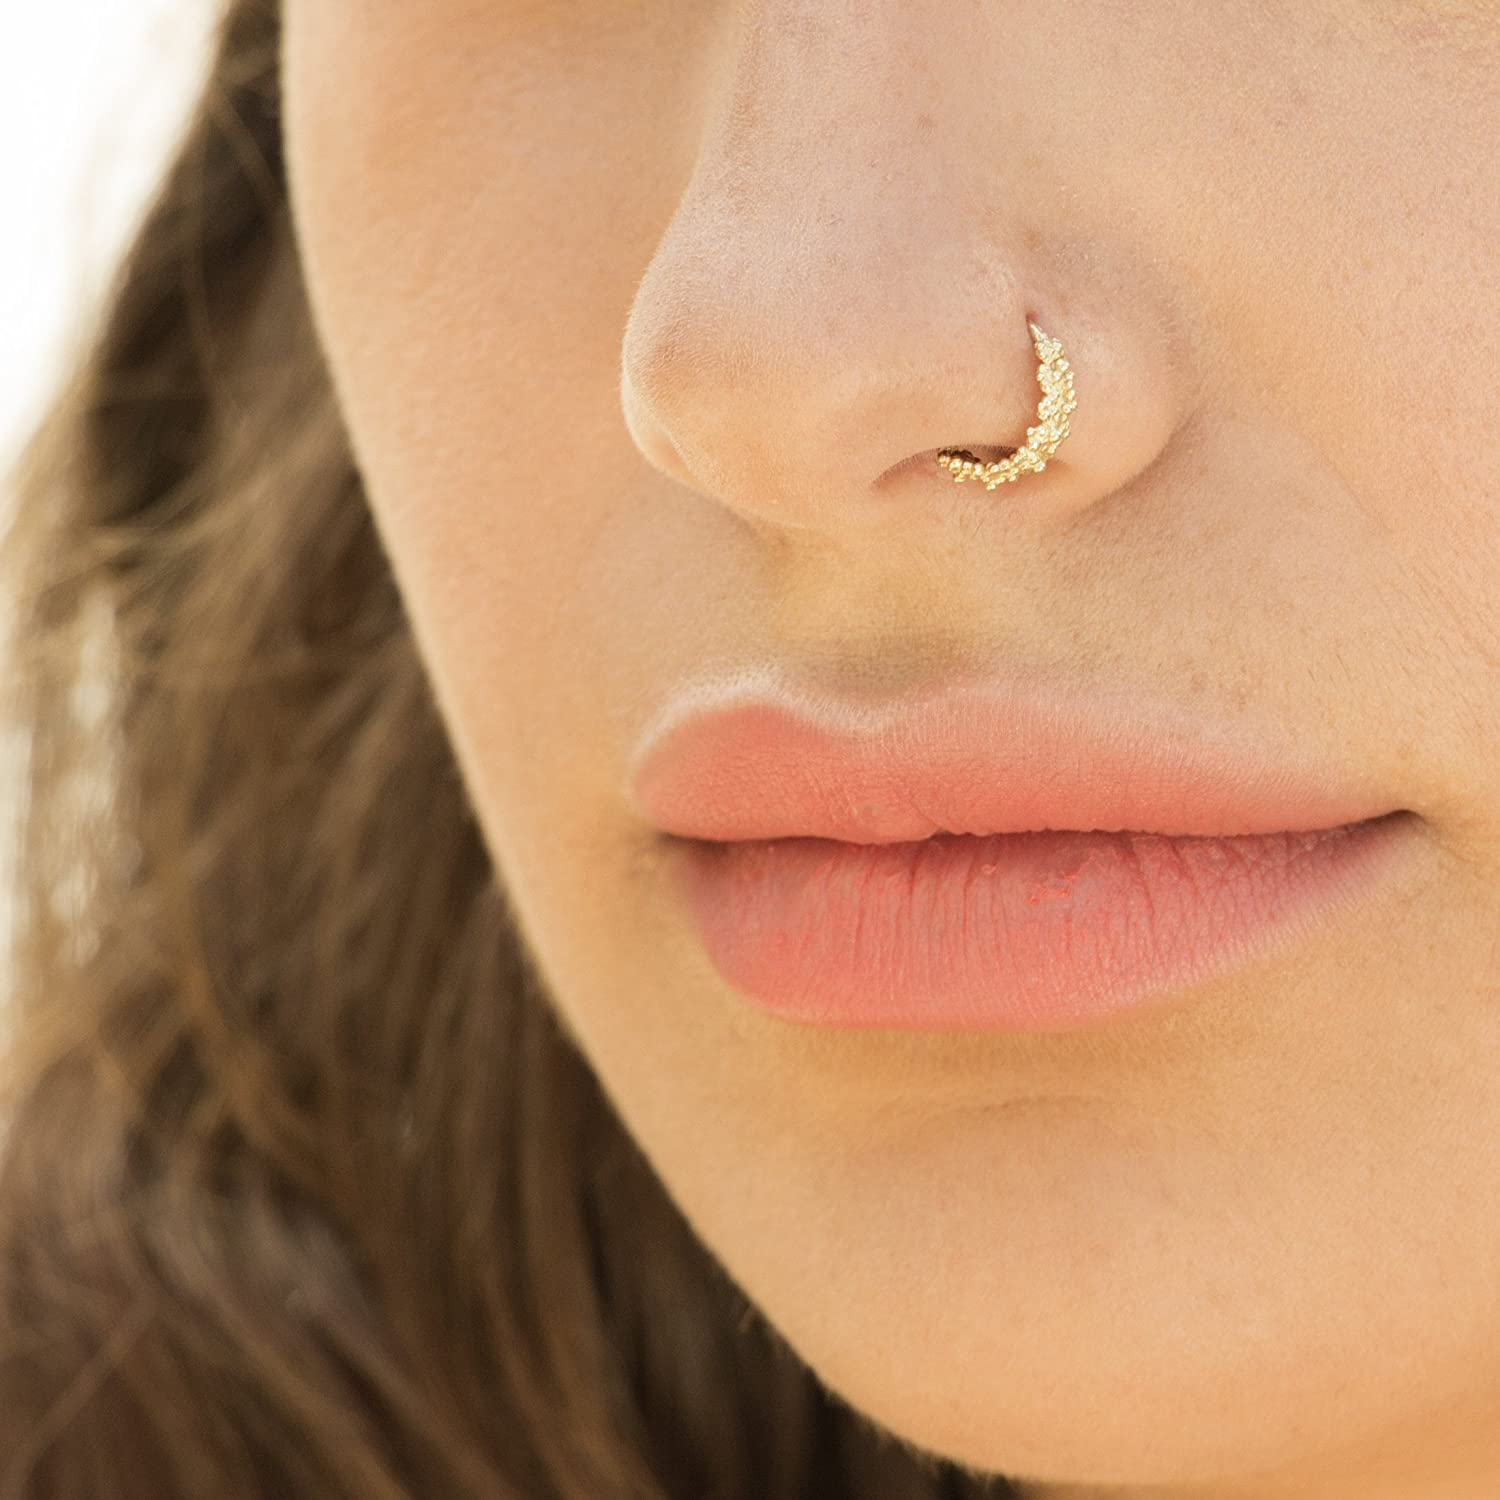 a4d575d48 ... Gold Nose Ring, 14K Solid Yellow Gold Tribal Nose Hoop, Indian Style  Piercing, ...